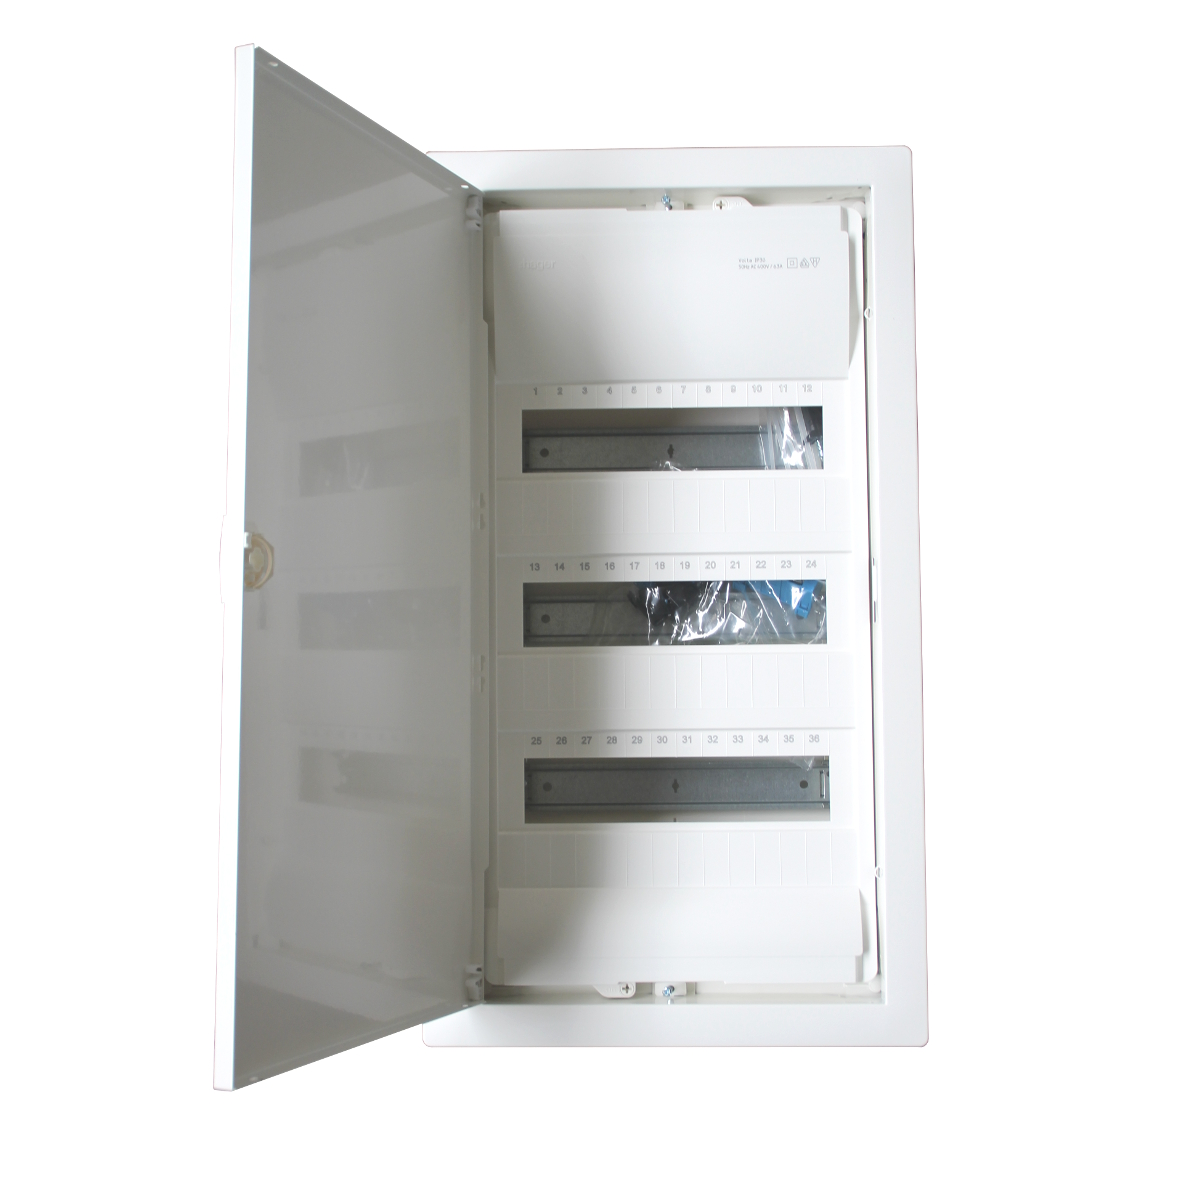 Hager Fuse Box Australia : Hager distribution box fuse to flush mounted in wall